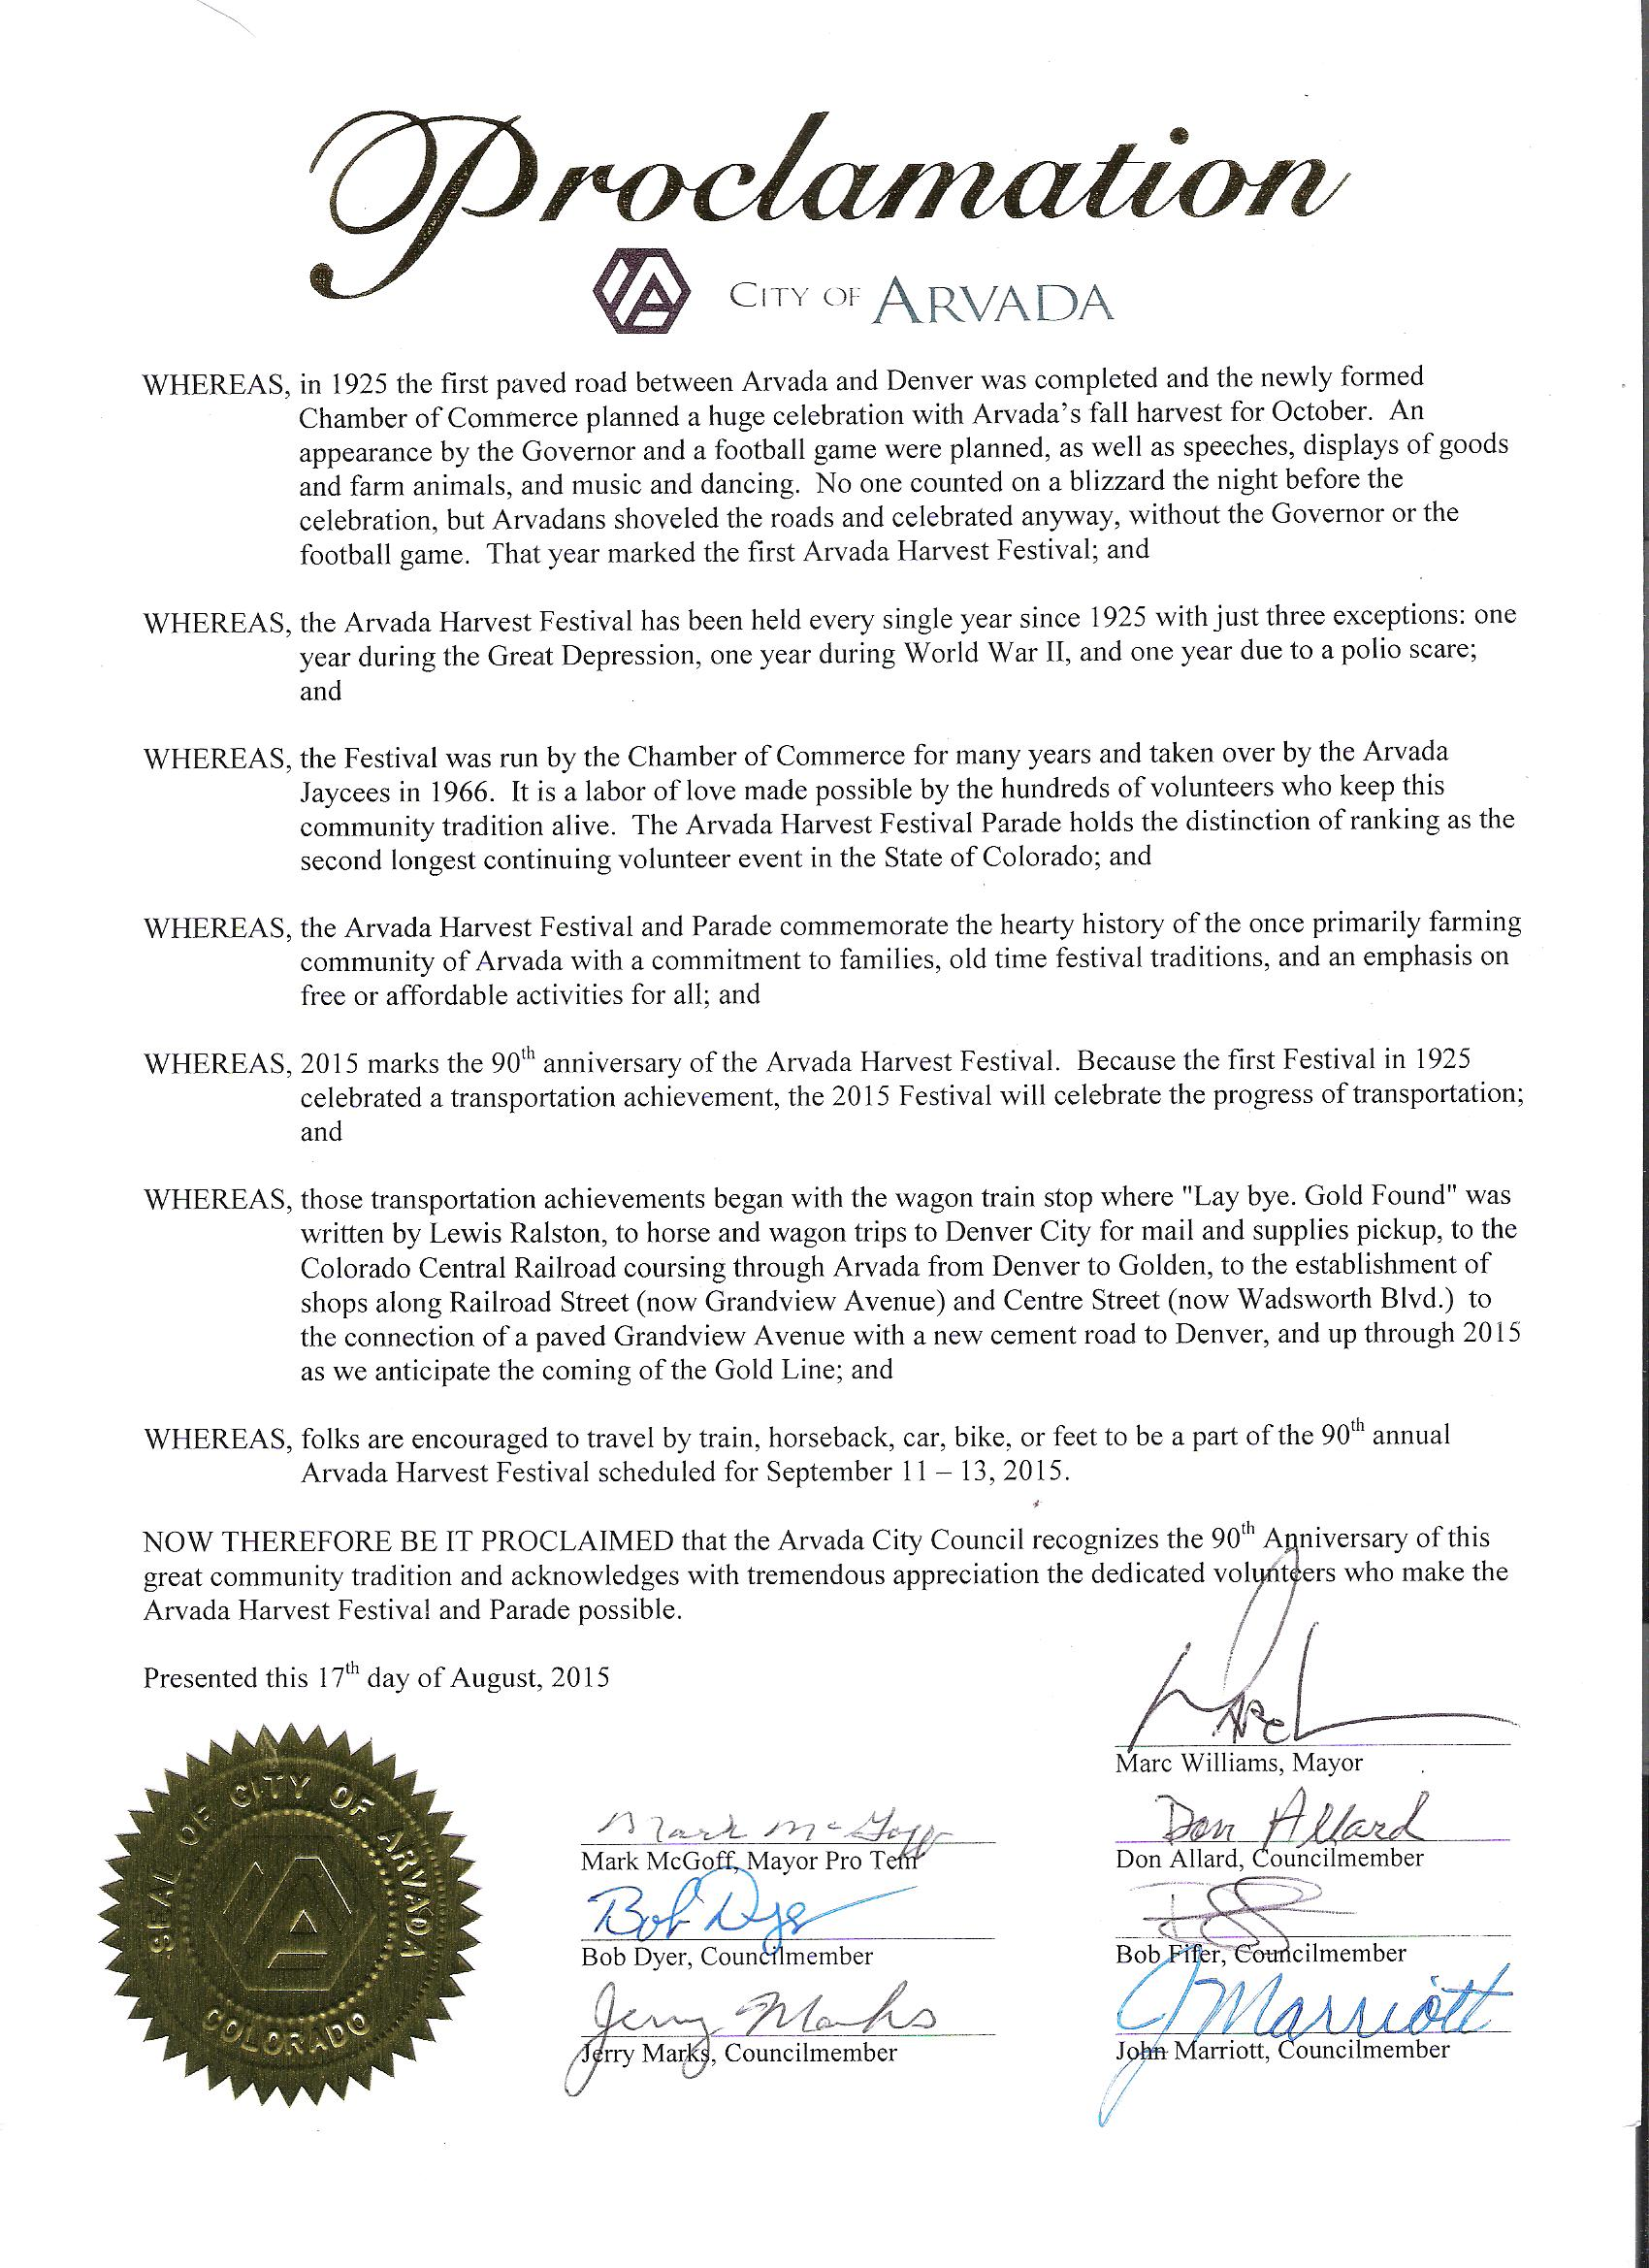 City's Proclamation to the Festival